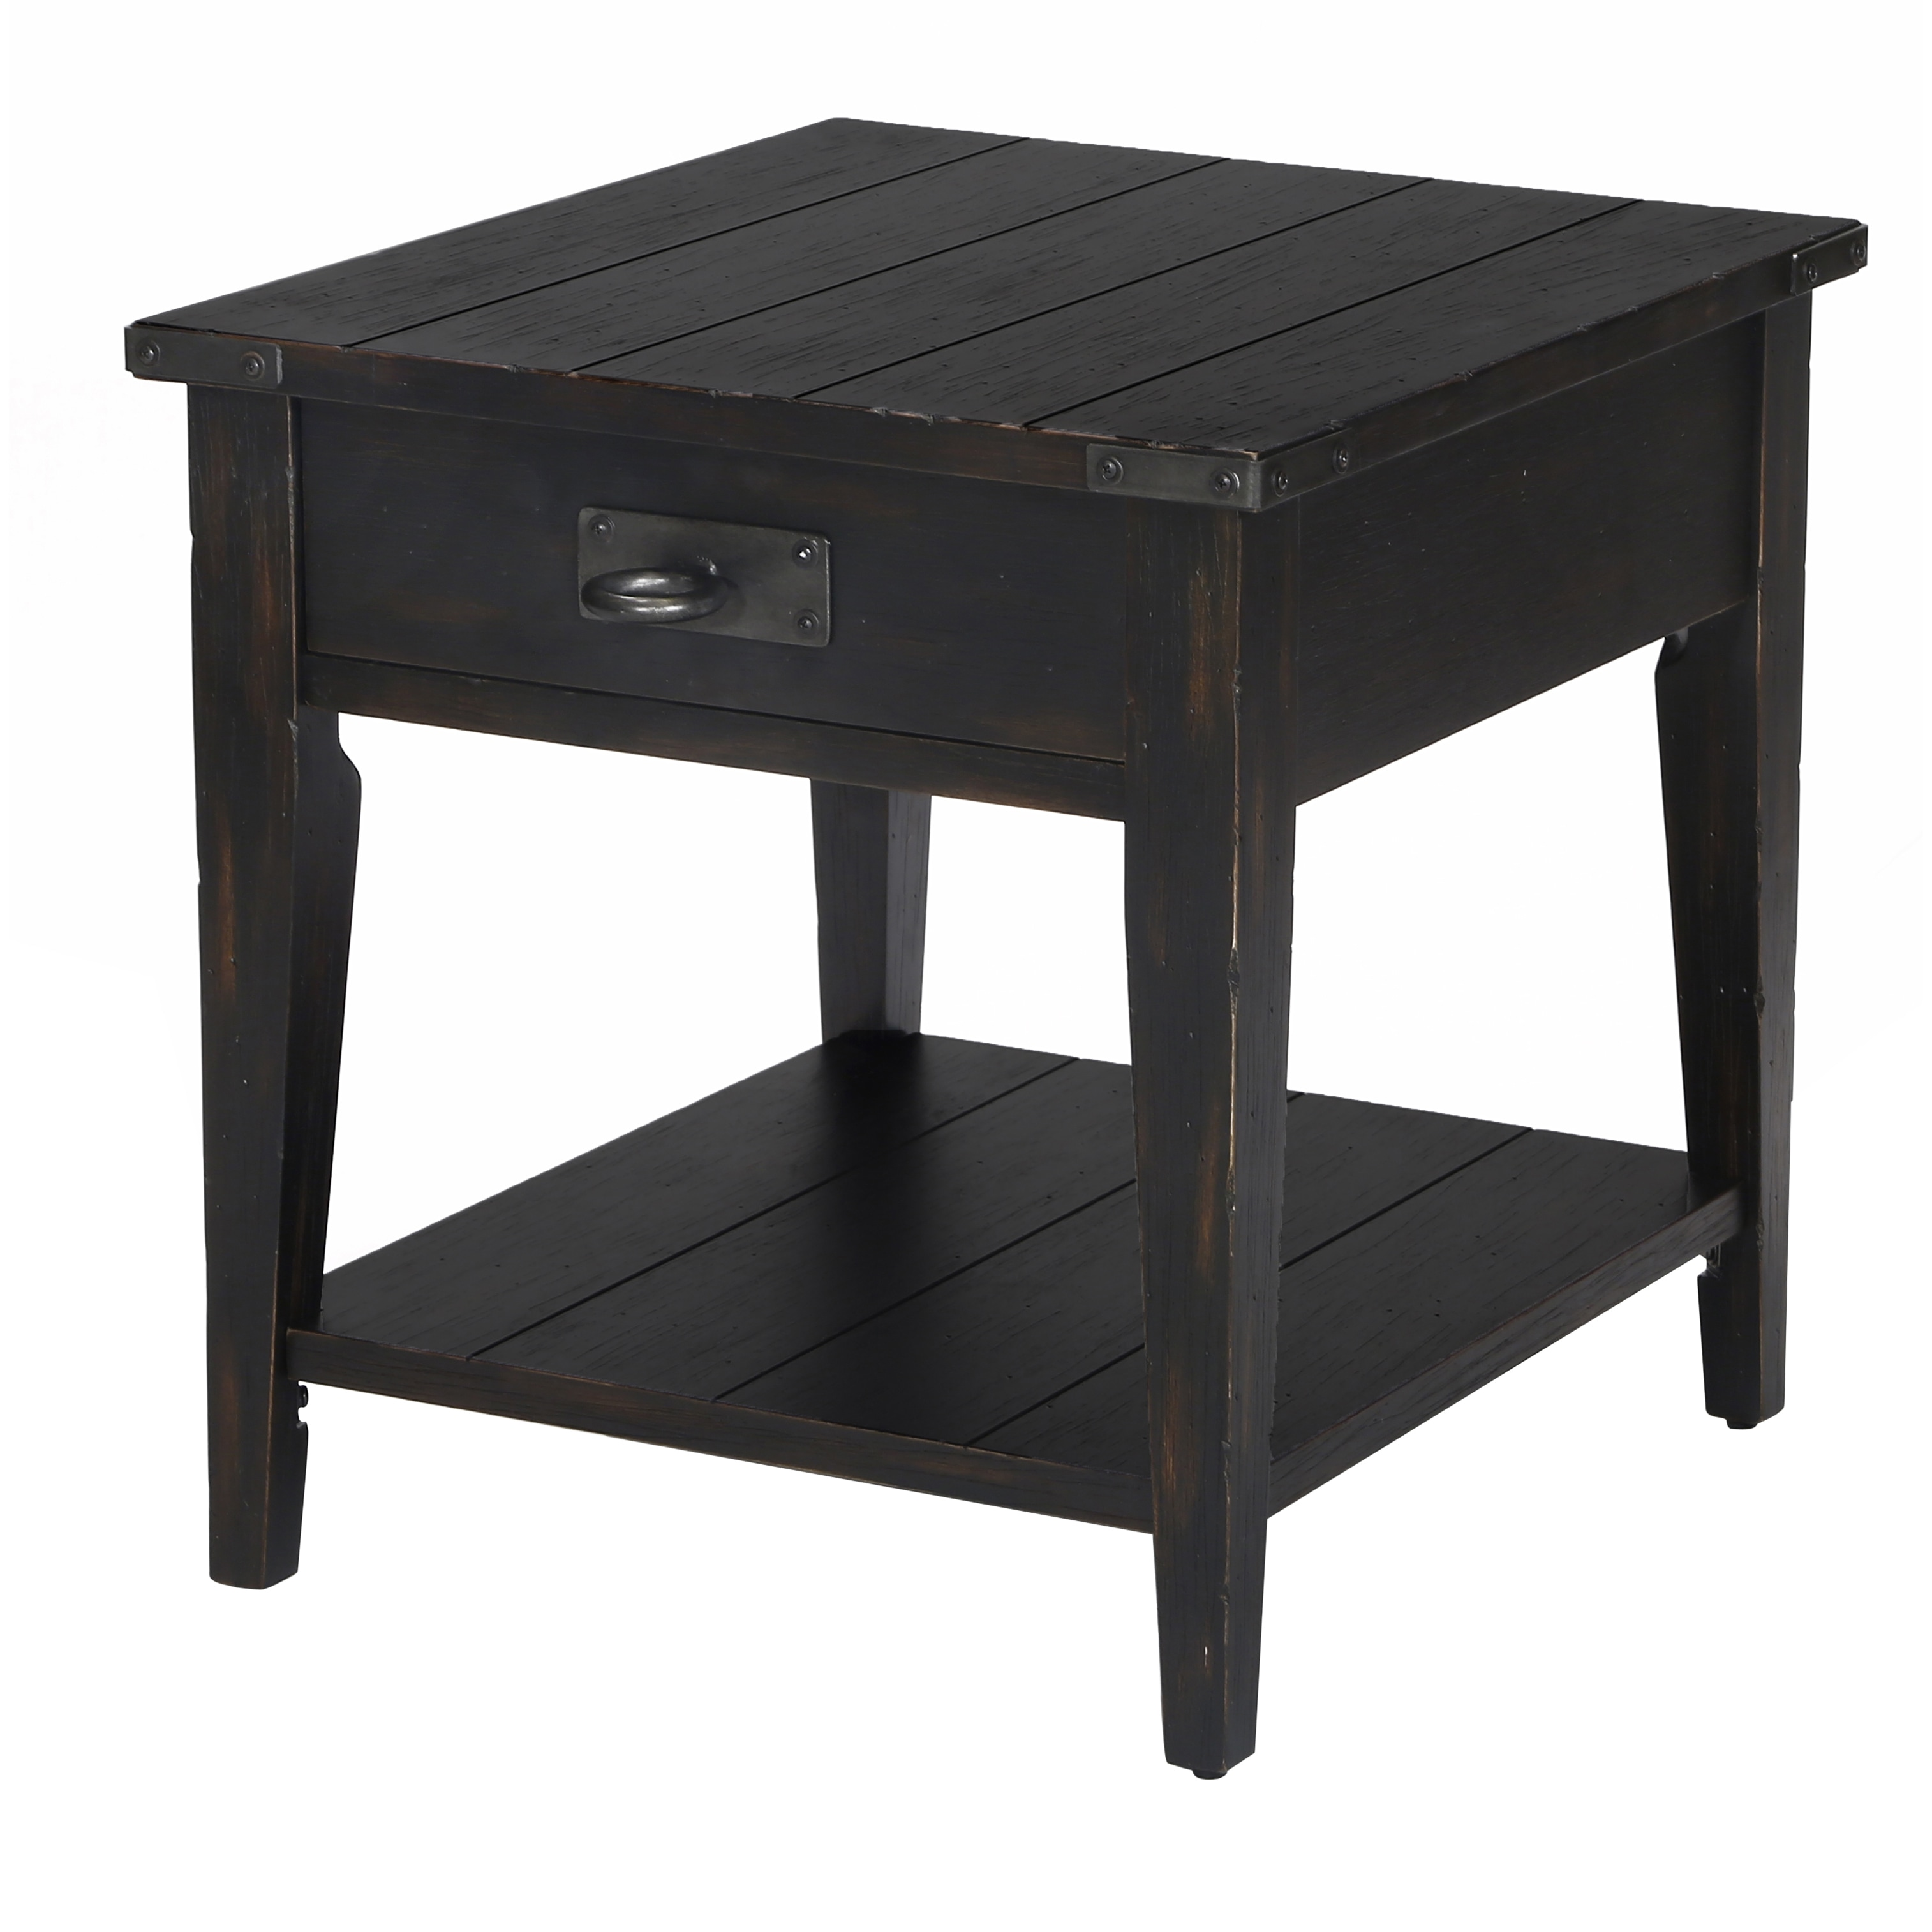 sheffield industrial distressed antique black storage end table magnussen rectangular free shipping today chair and side inch coffee pieces lamps under corey unfinished wood